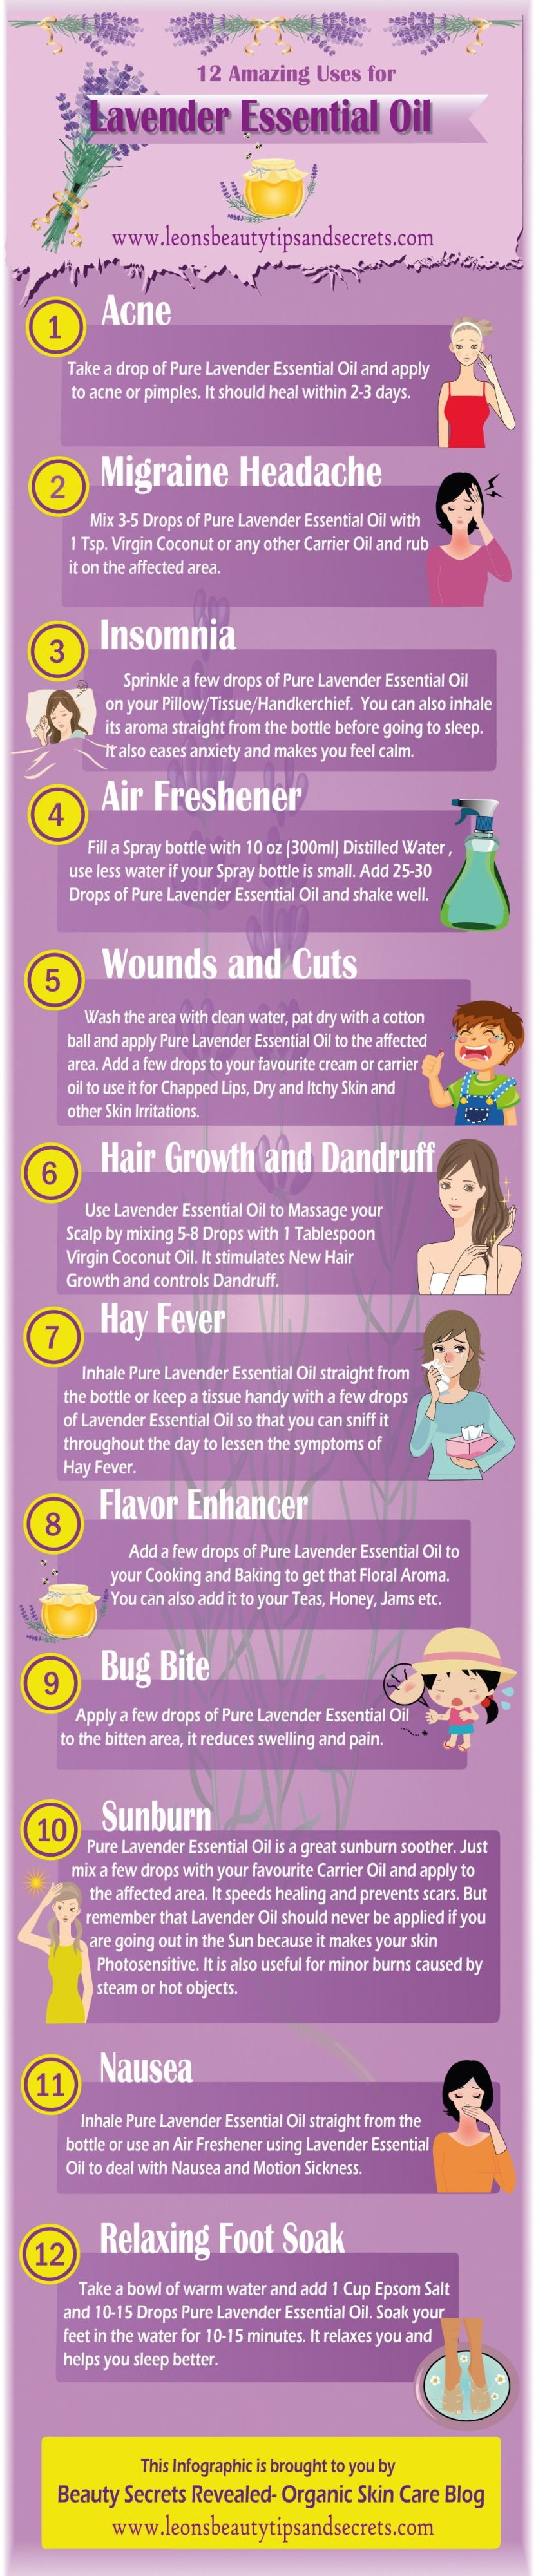 Uses for the Essential Oil Lavender